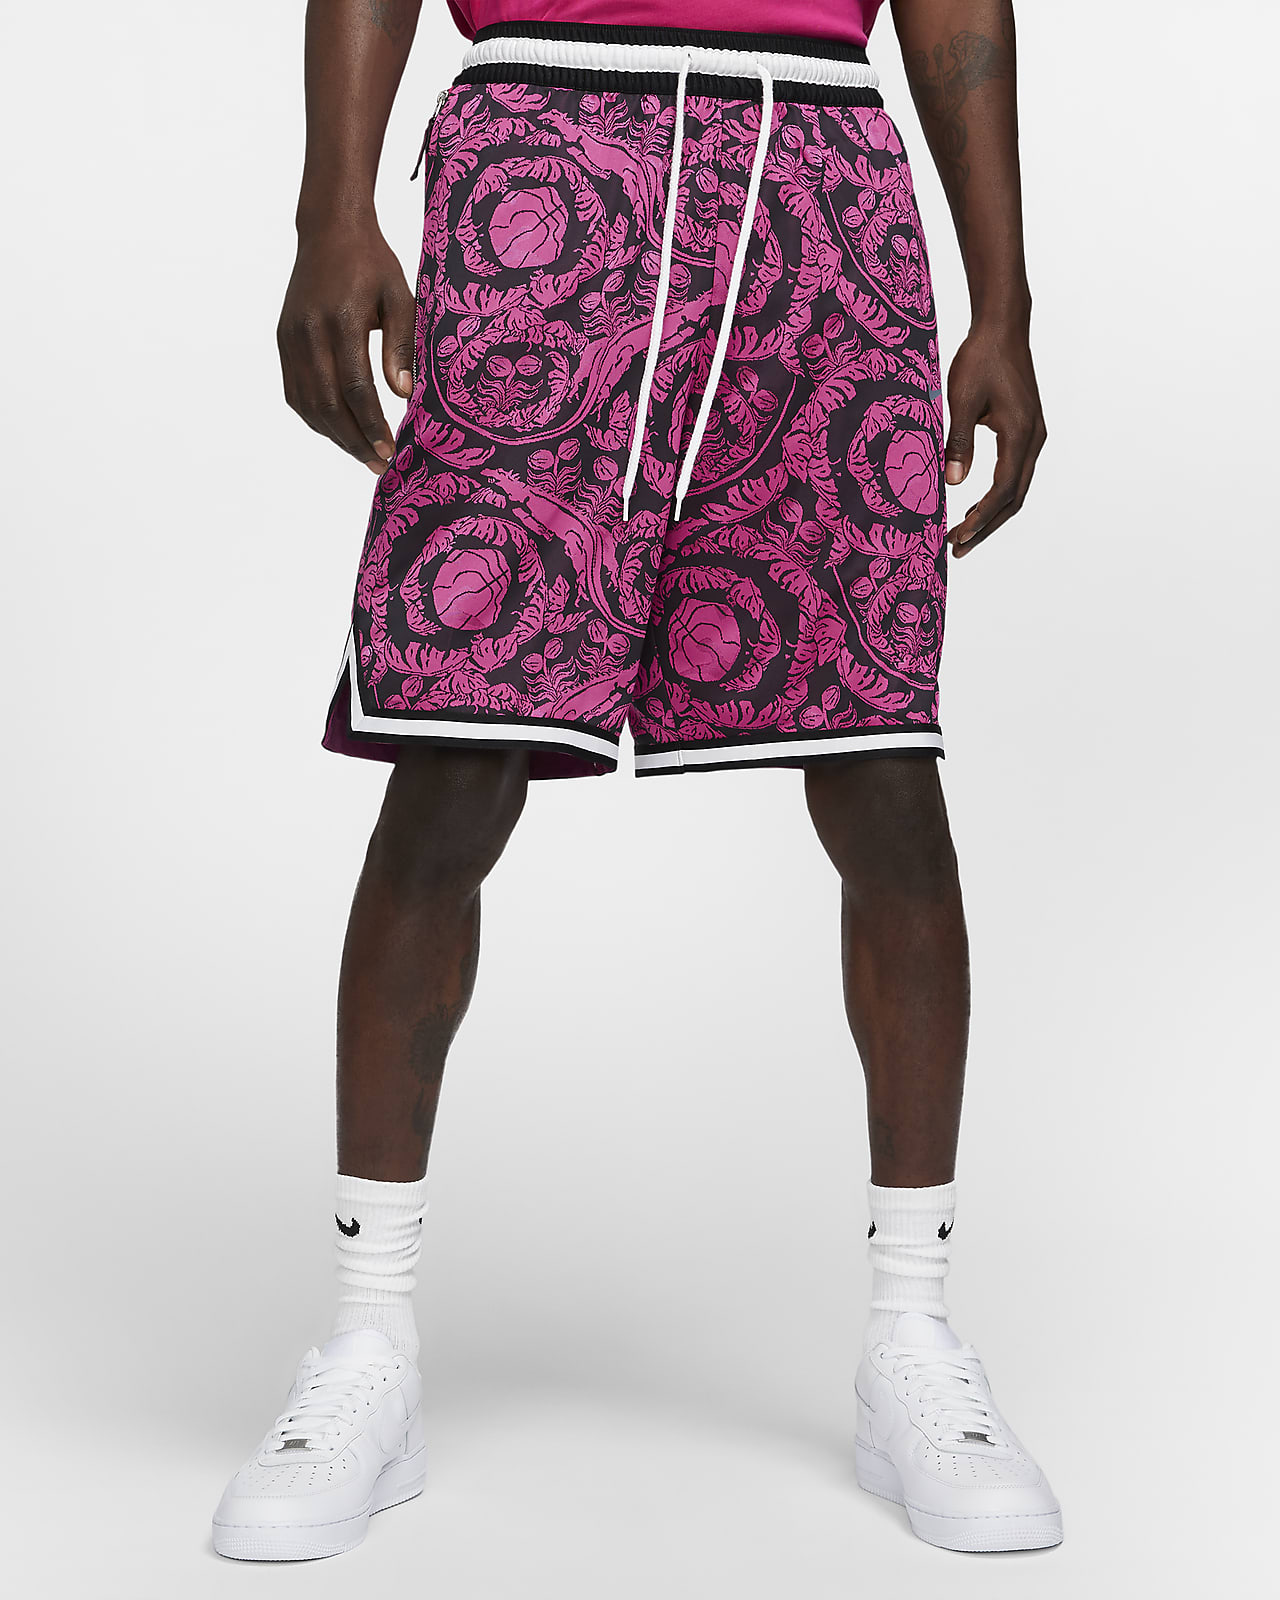 Nike Dri-FIT DNA Exploration Series Men's Printed Basketball Shorts